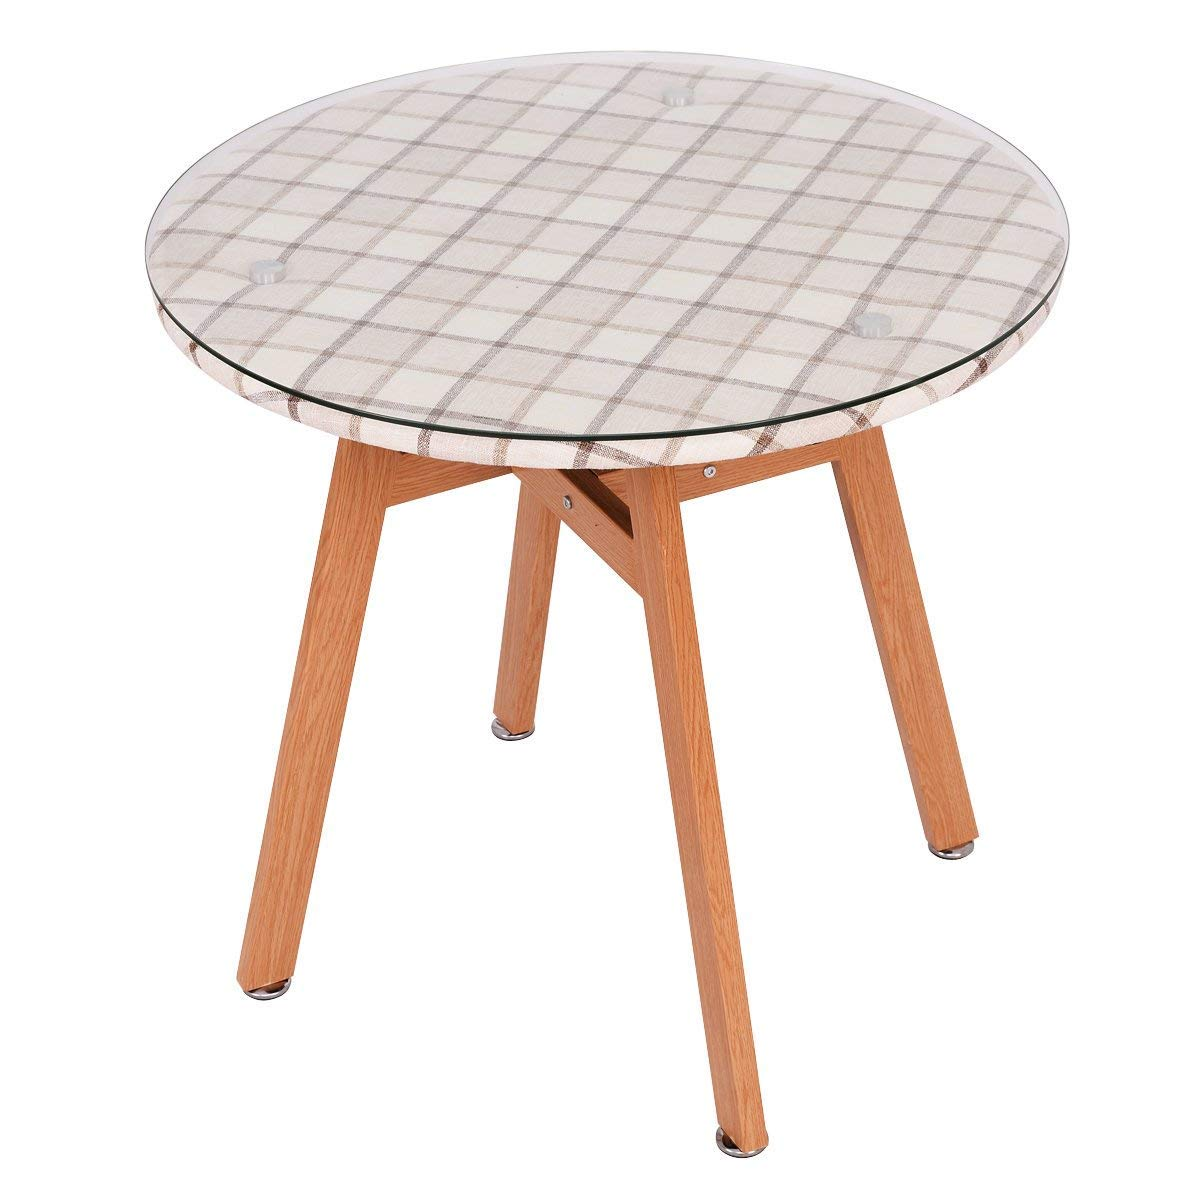 Casart Round Dining Table Steel Frame Tempered Glass Top Home Decor Kitchen Furniture